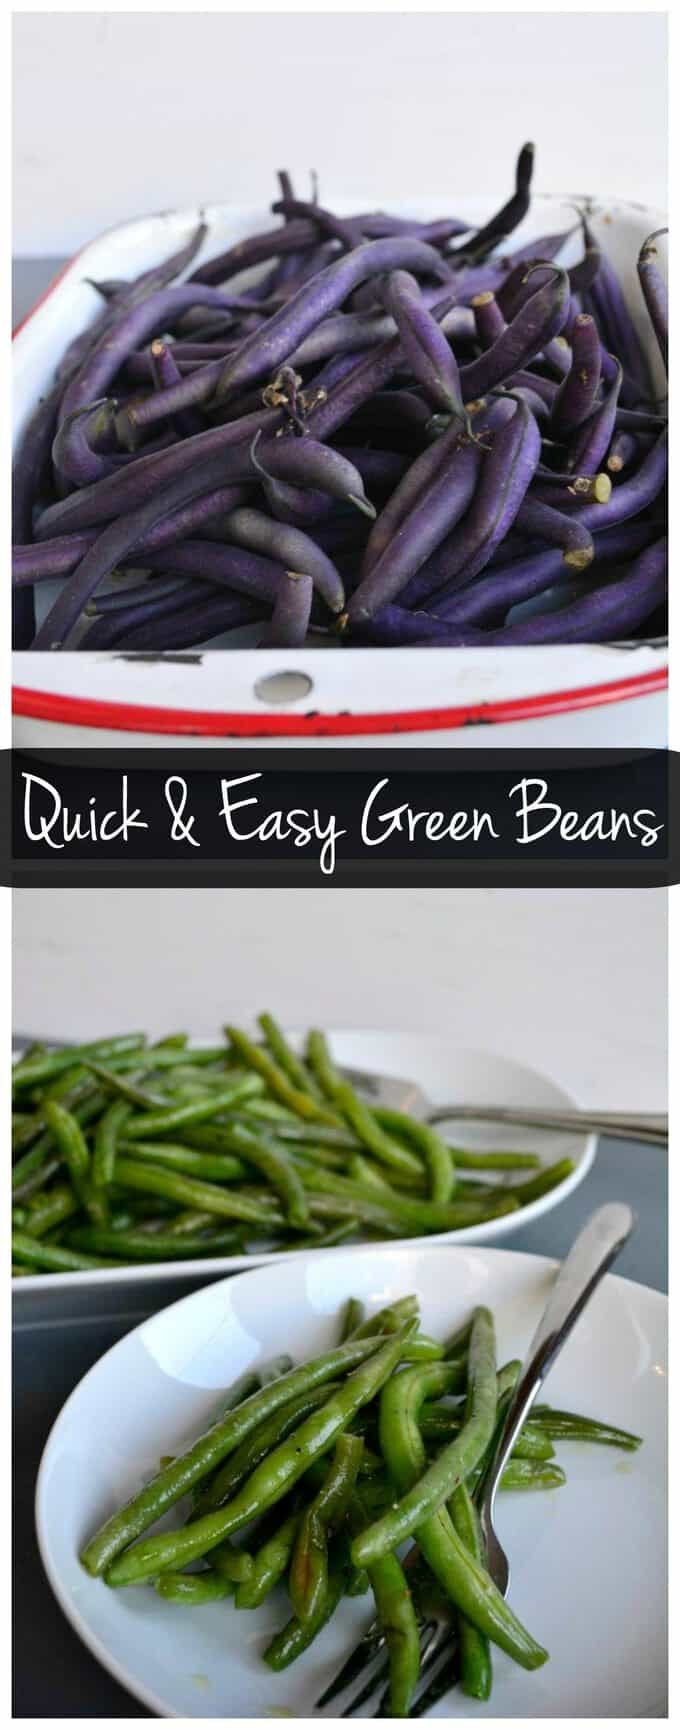 These quick and easy green beans can be on the table in 15 minutes! It's a perfect healthy side dish!